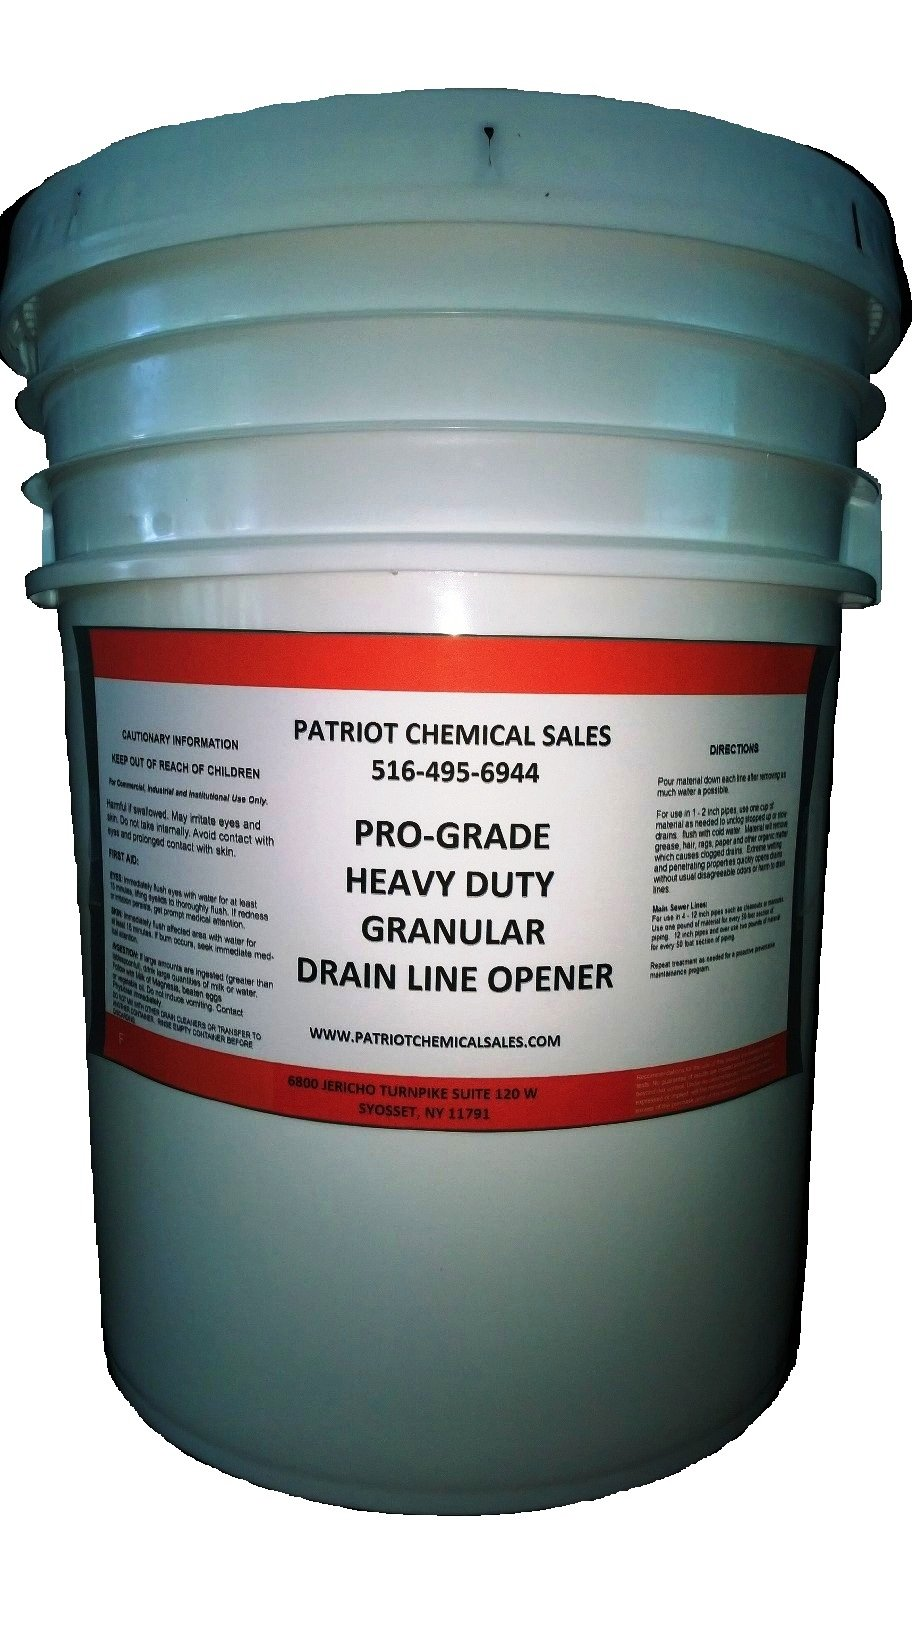 Patriot Chemical Sales 25 Pounds Heavy Duty Granular Drain Line Opener Crystals Industrial Strength by Patriot Chemical Sales